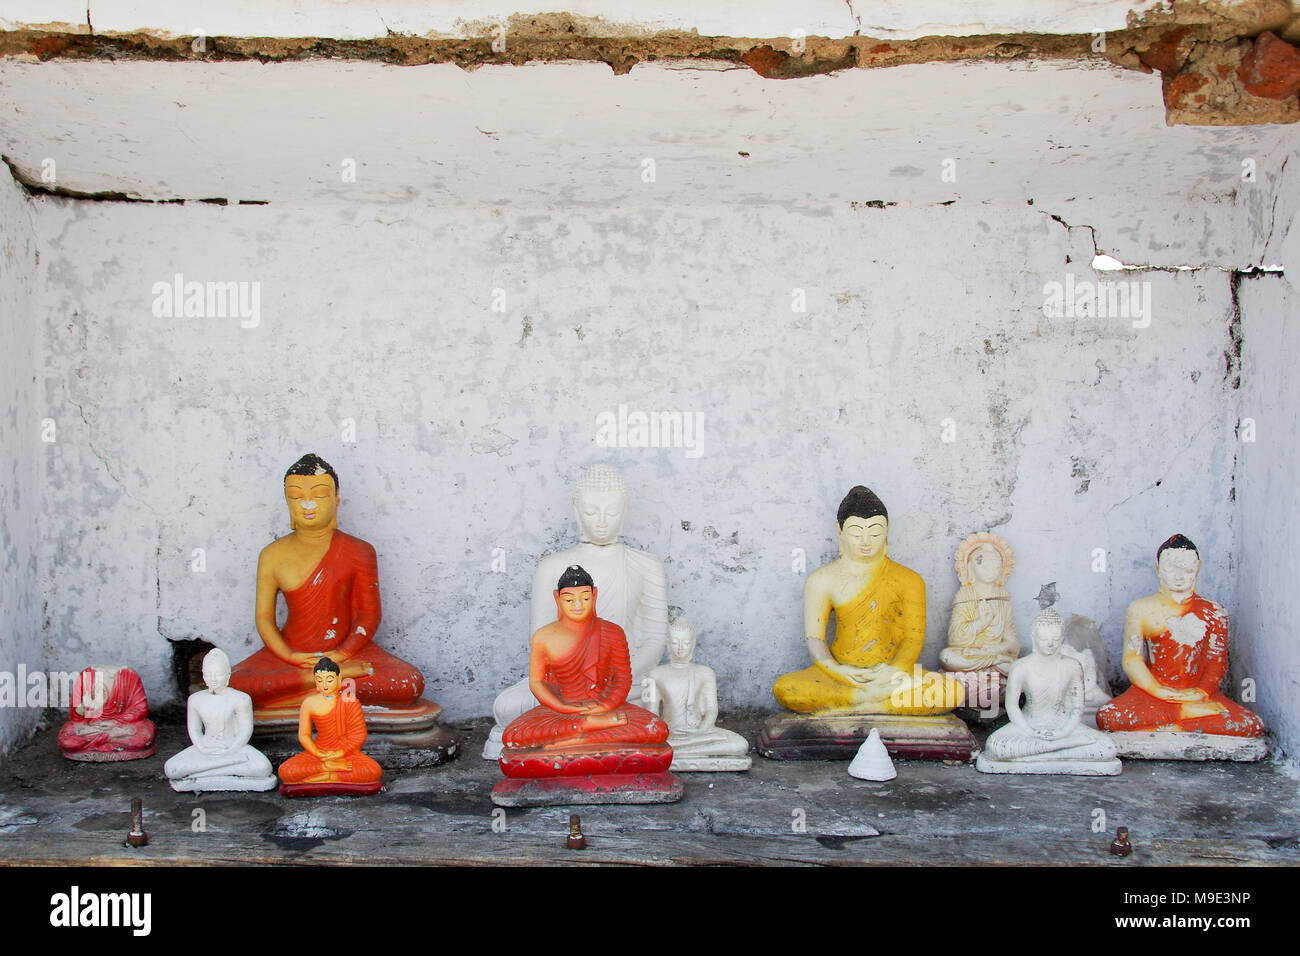 Different gypsum statuettes of Buddha in a dilapidated small roadside shrine in Sri Lanka - Stock Image